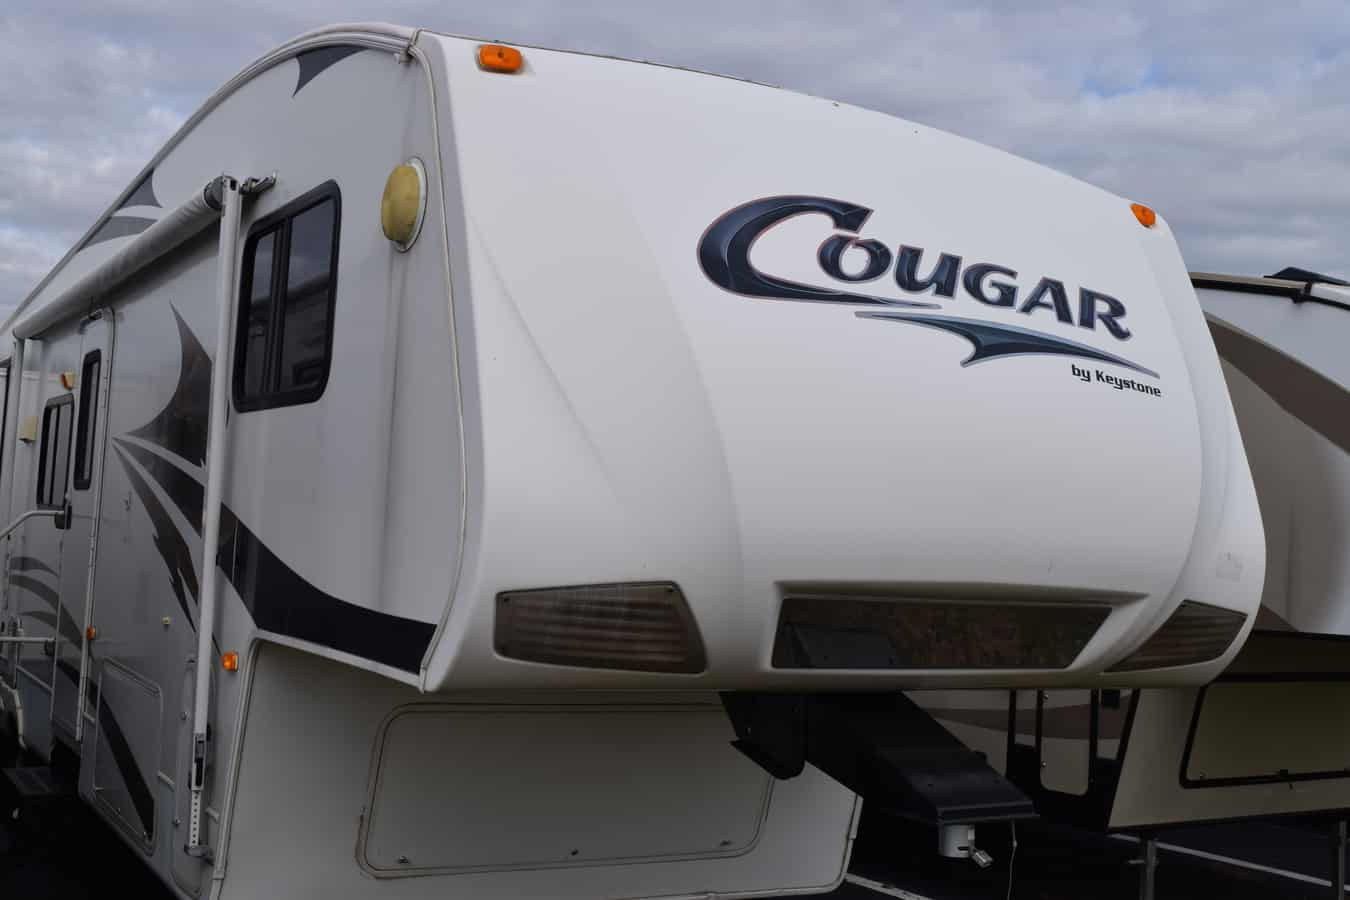 USED 2007 Keystone rv Cougar 289BHS - Three Way Campers